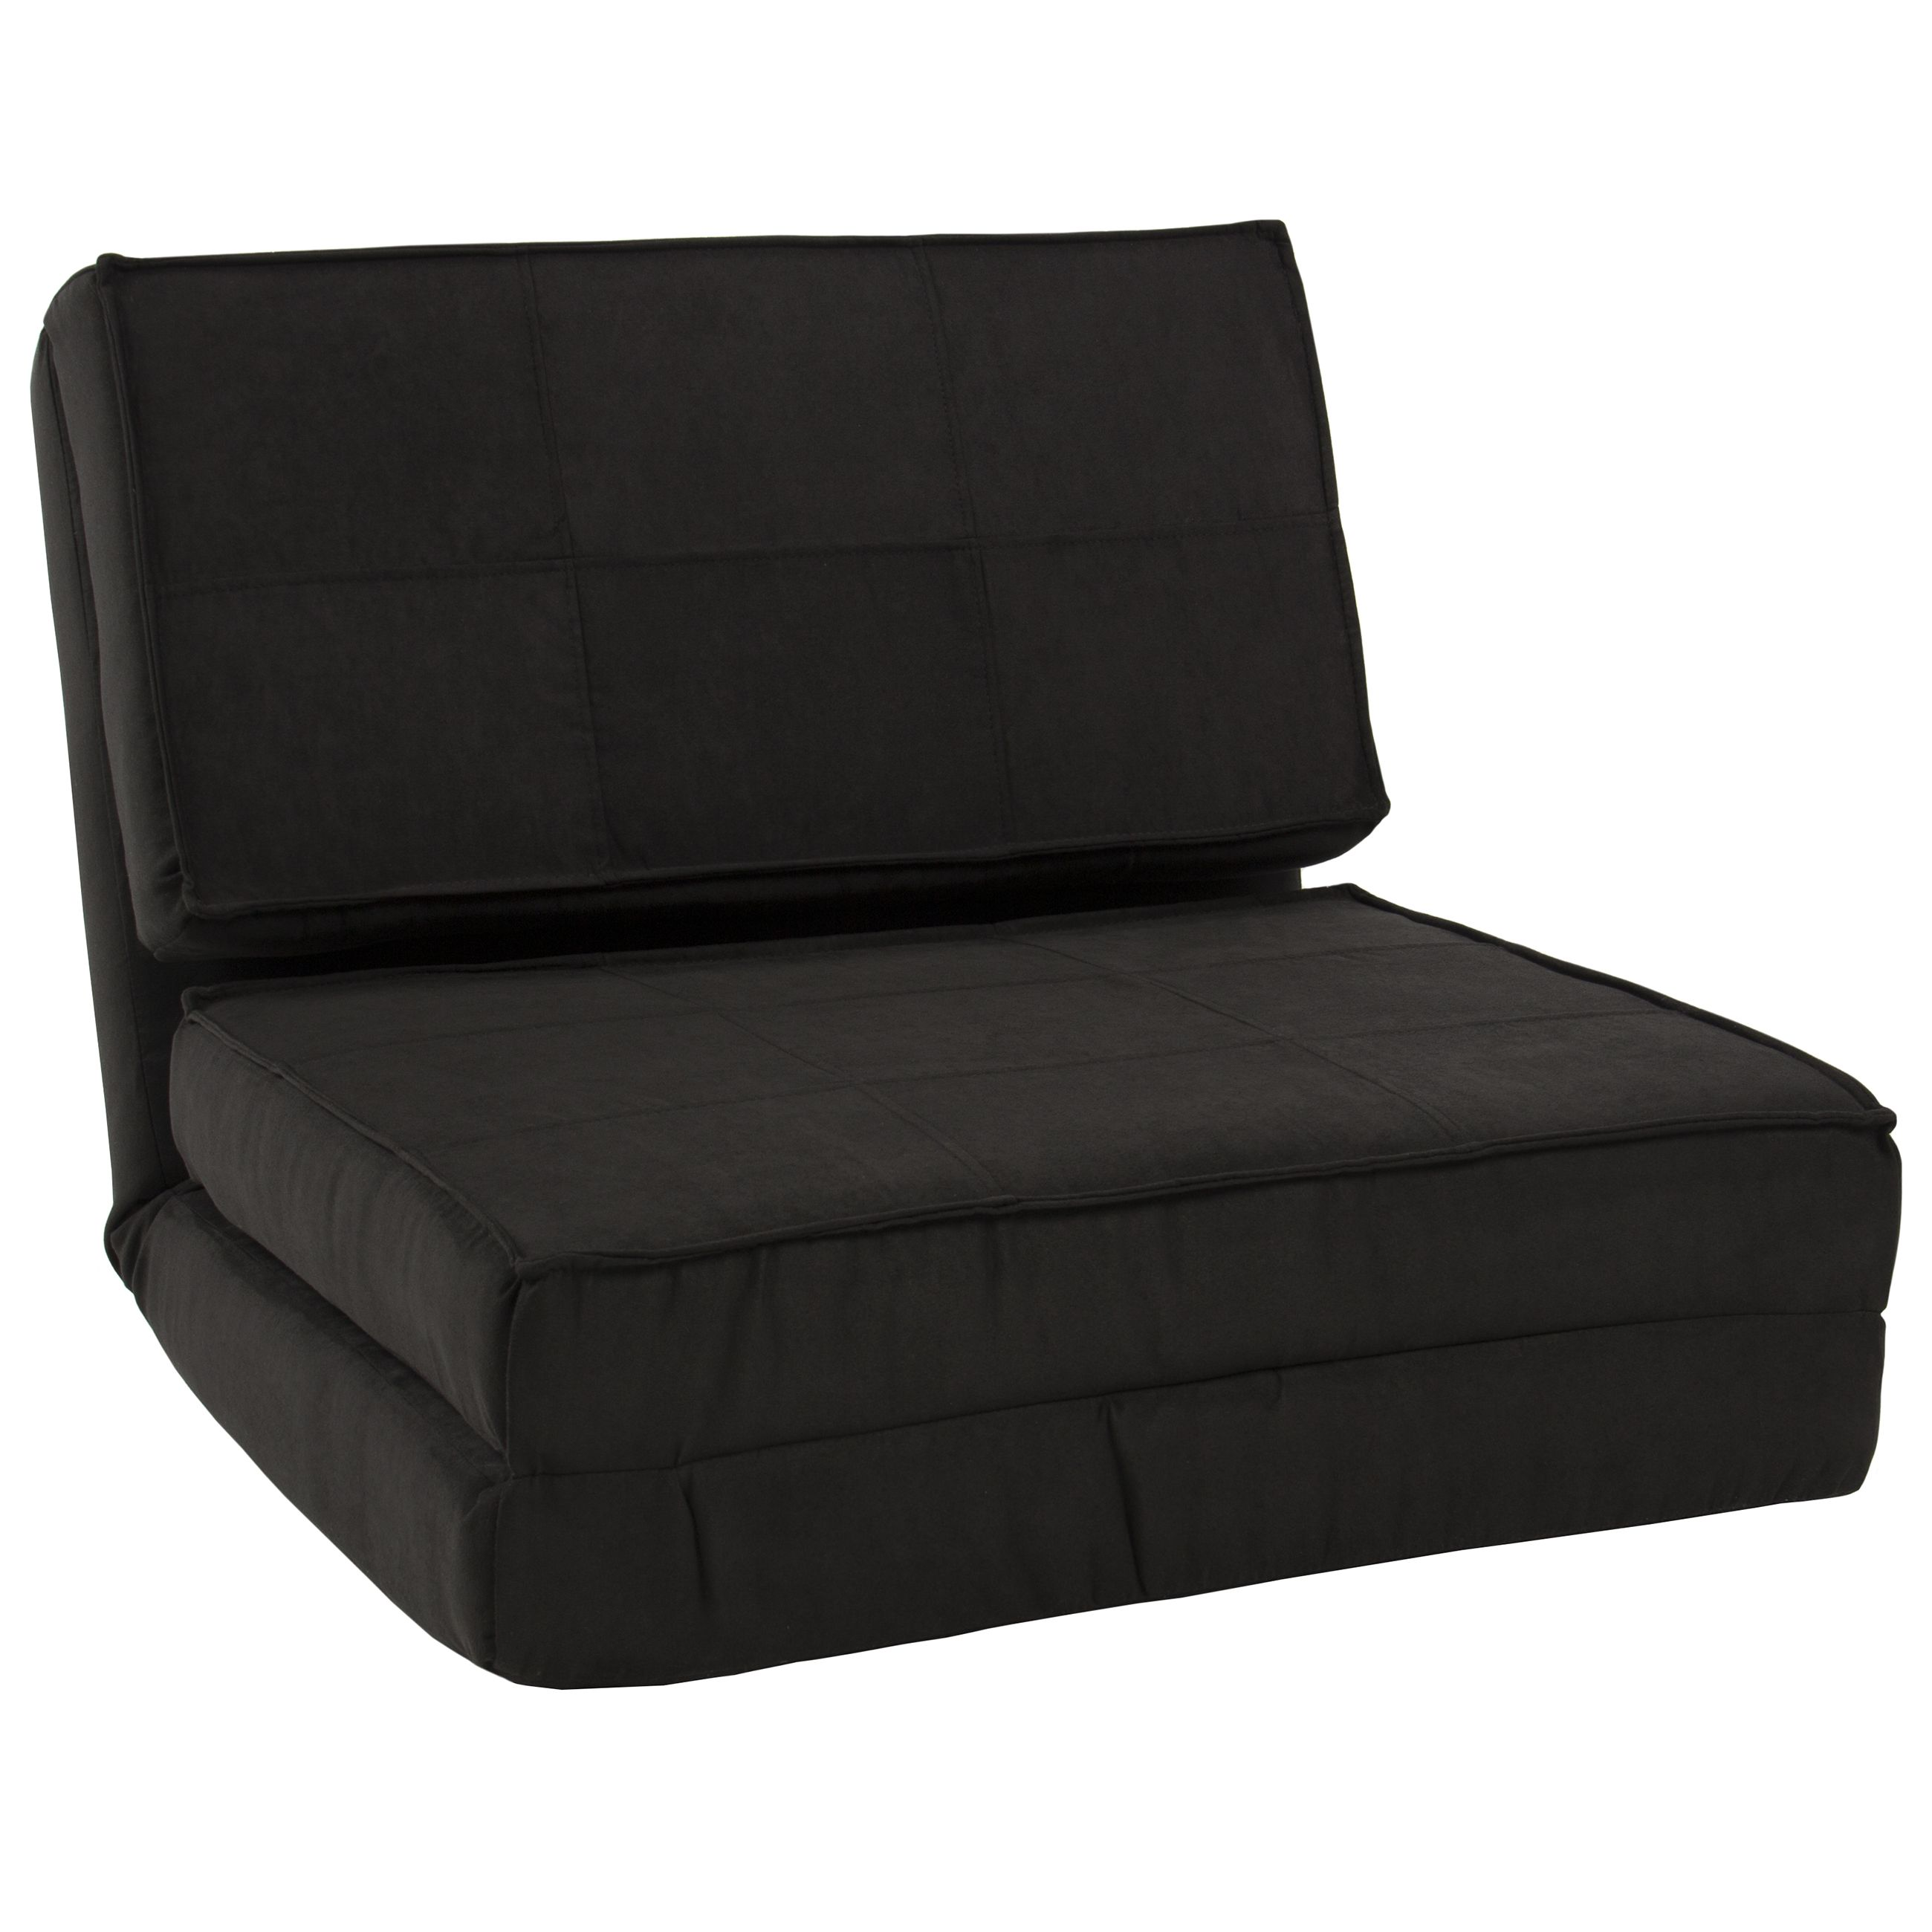 awesome Folding Couch Inspirational Folding Couch 76 In Sofas